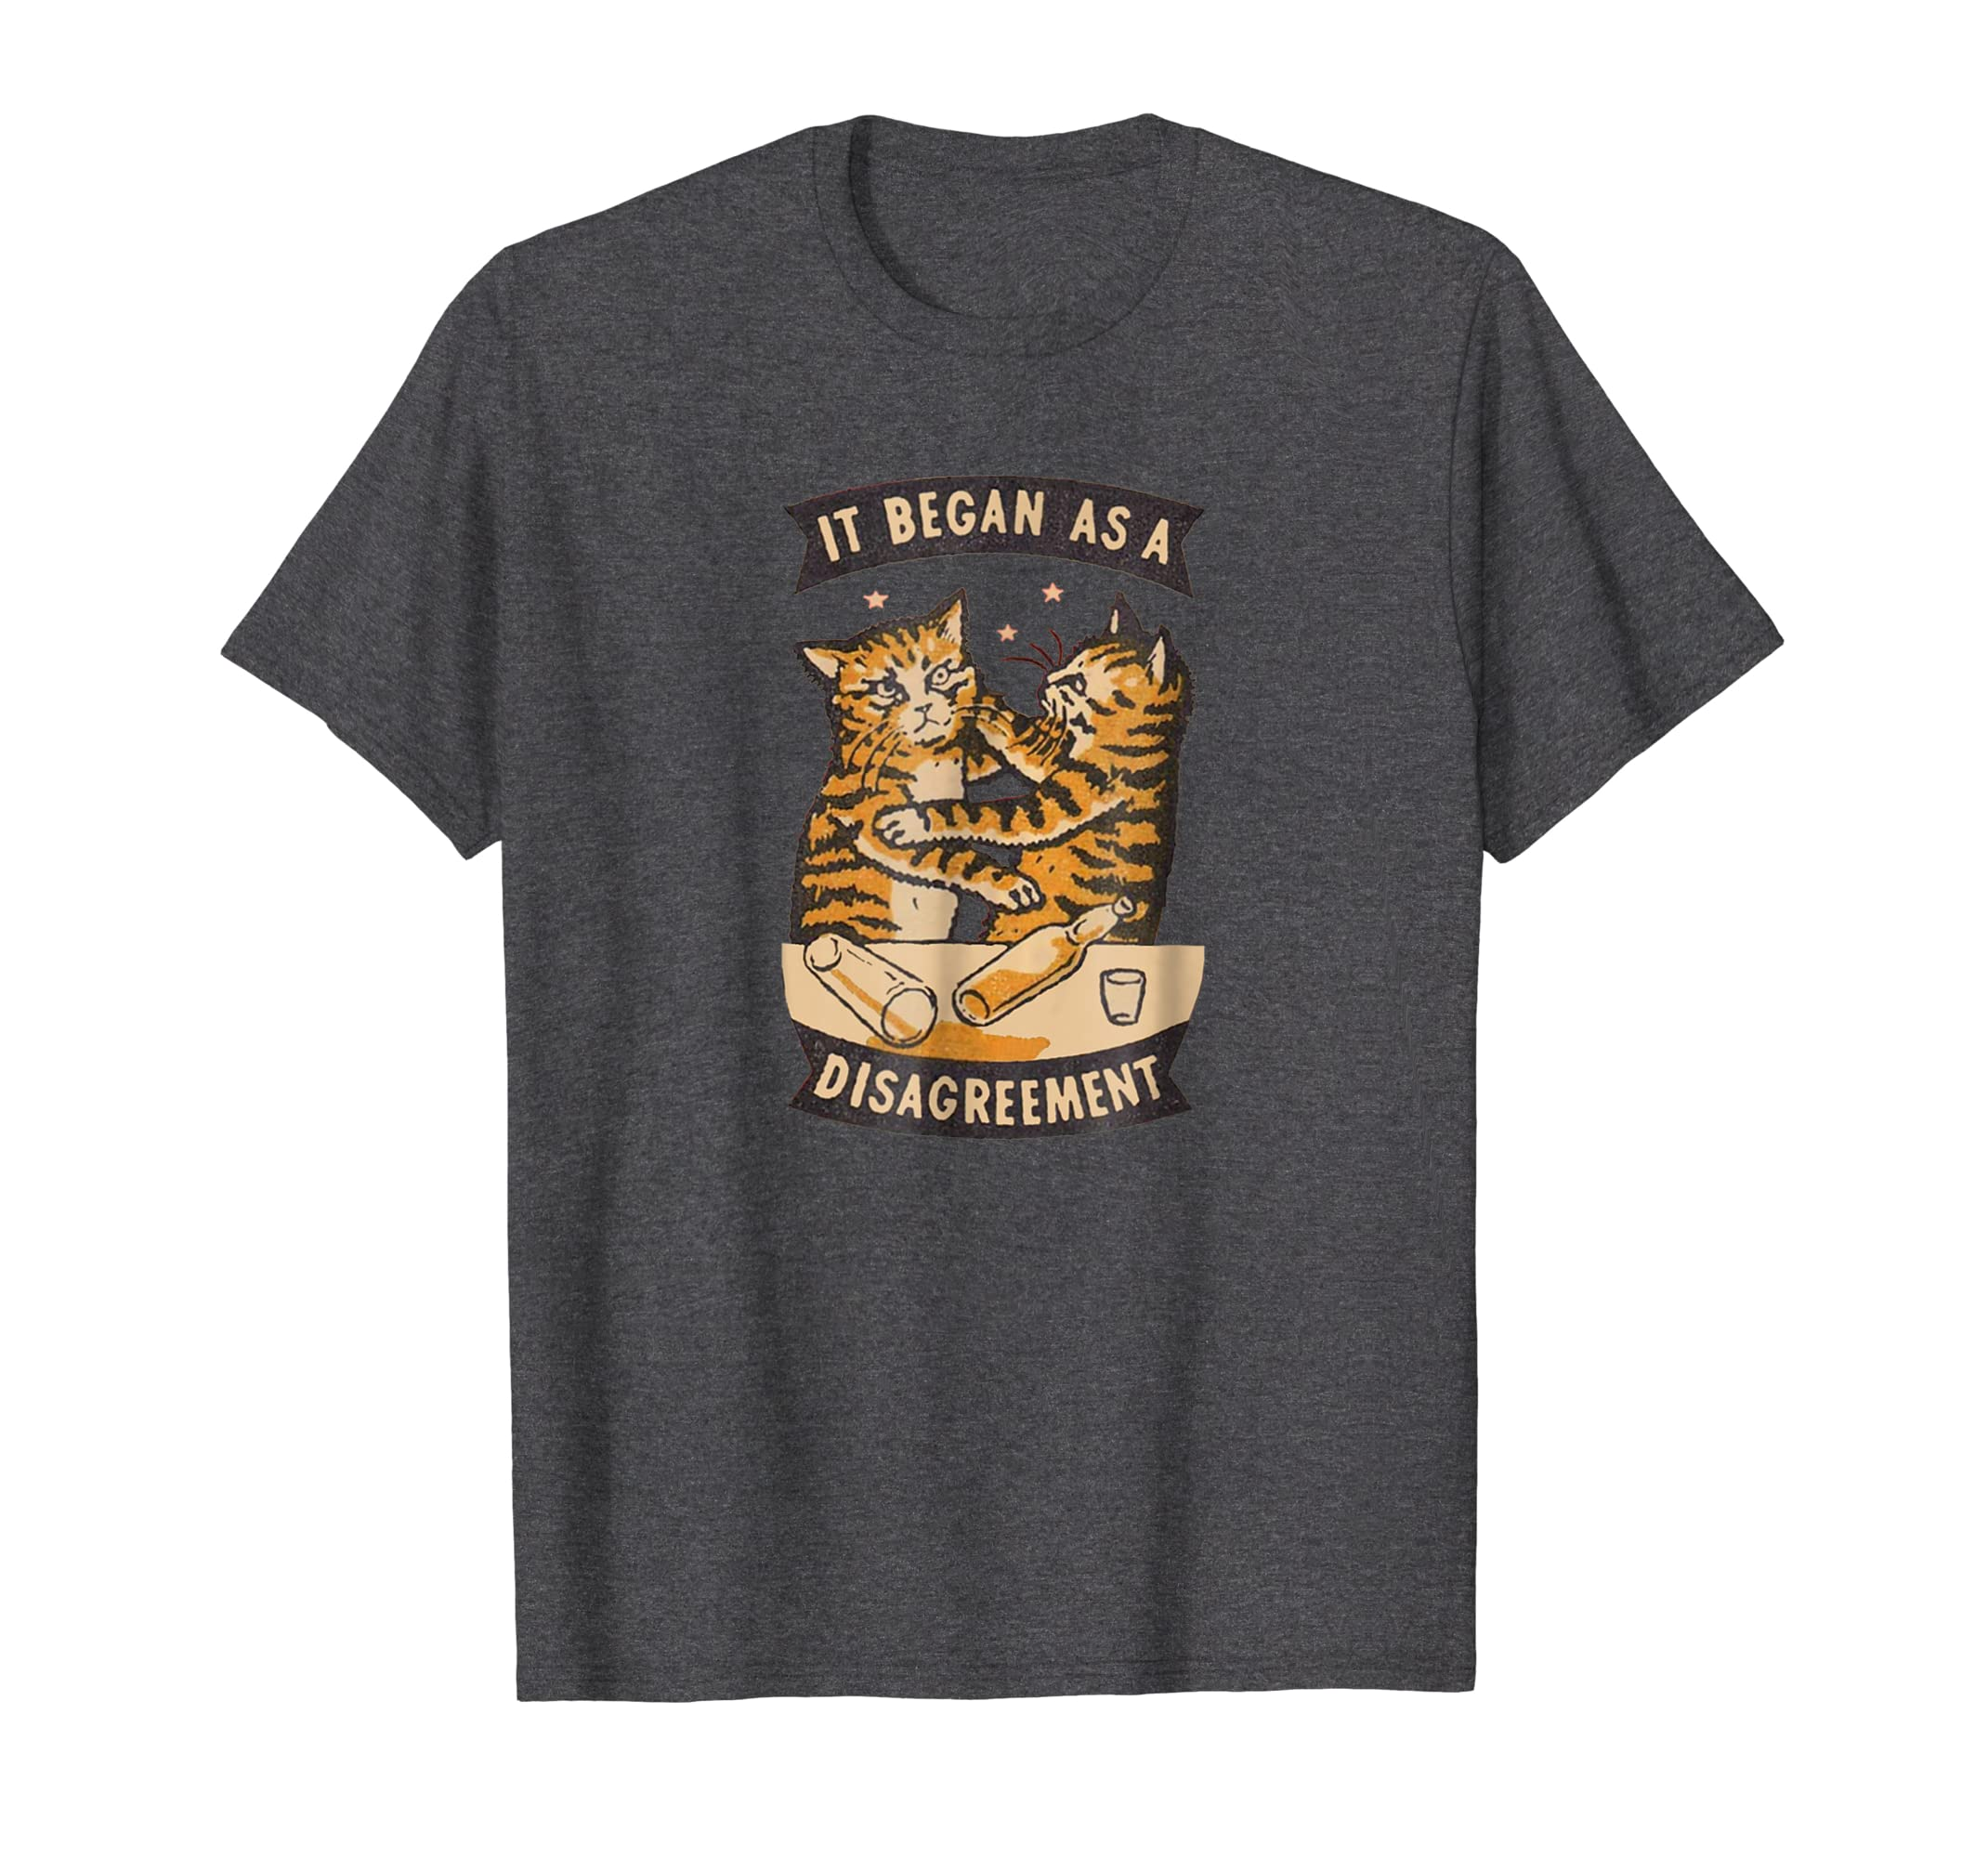 CAT FIGHT T Shirt! Things just escalated.-azvn